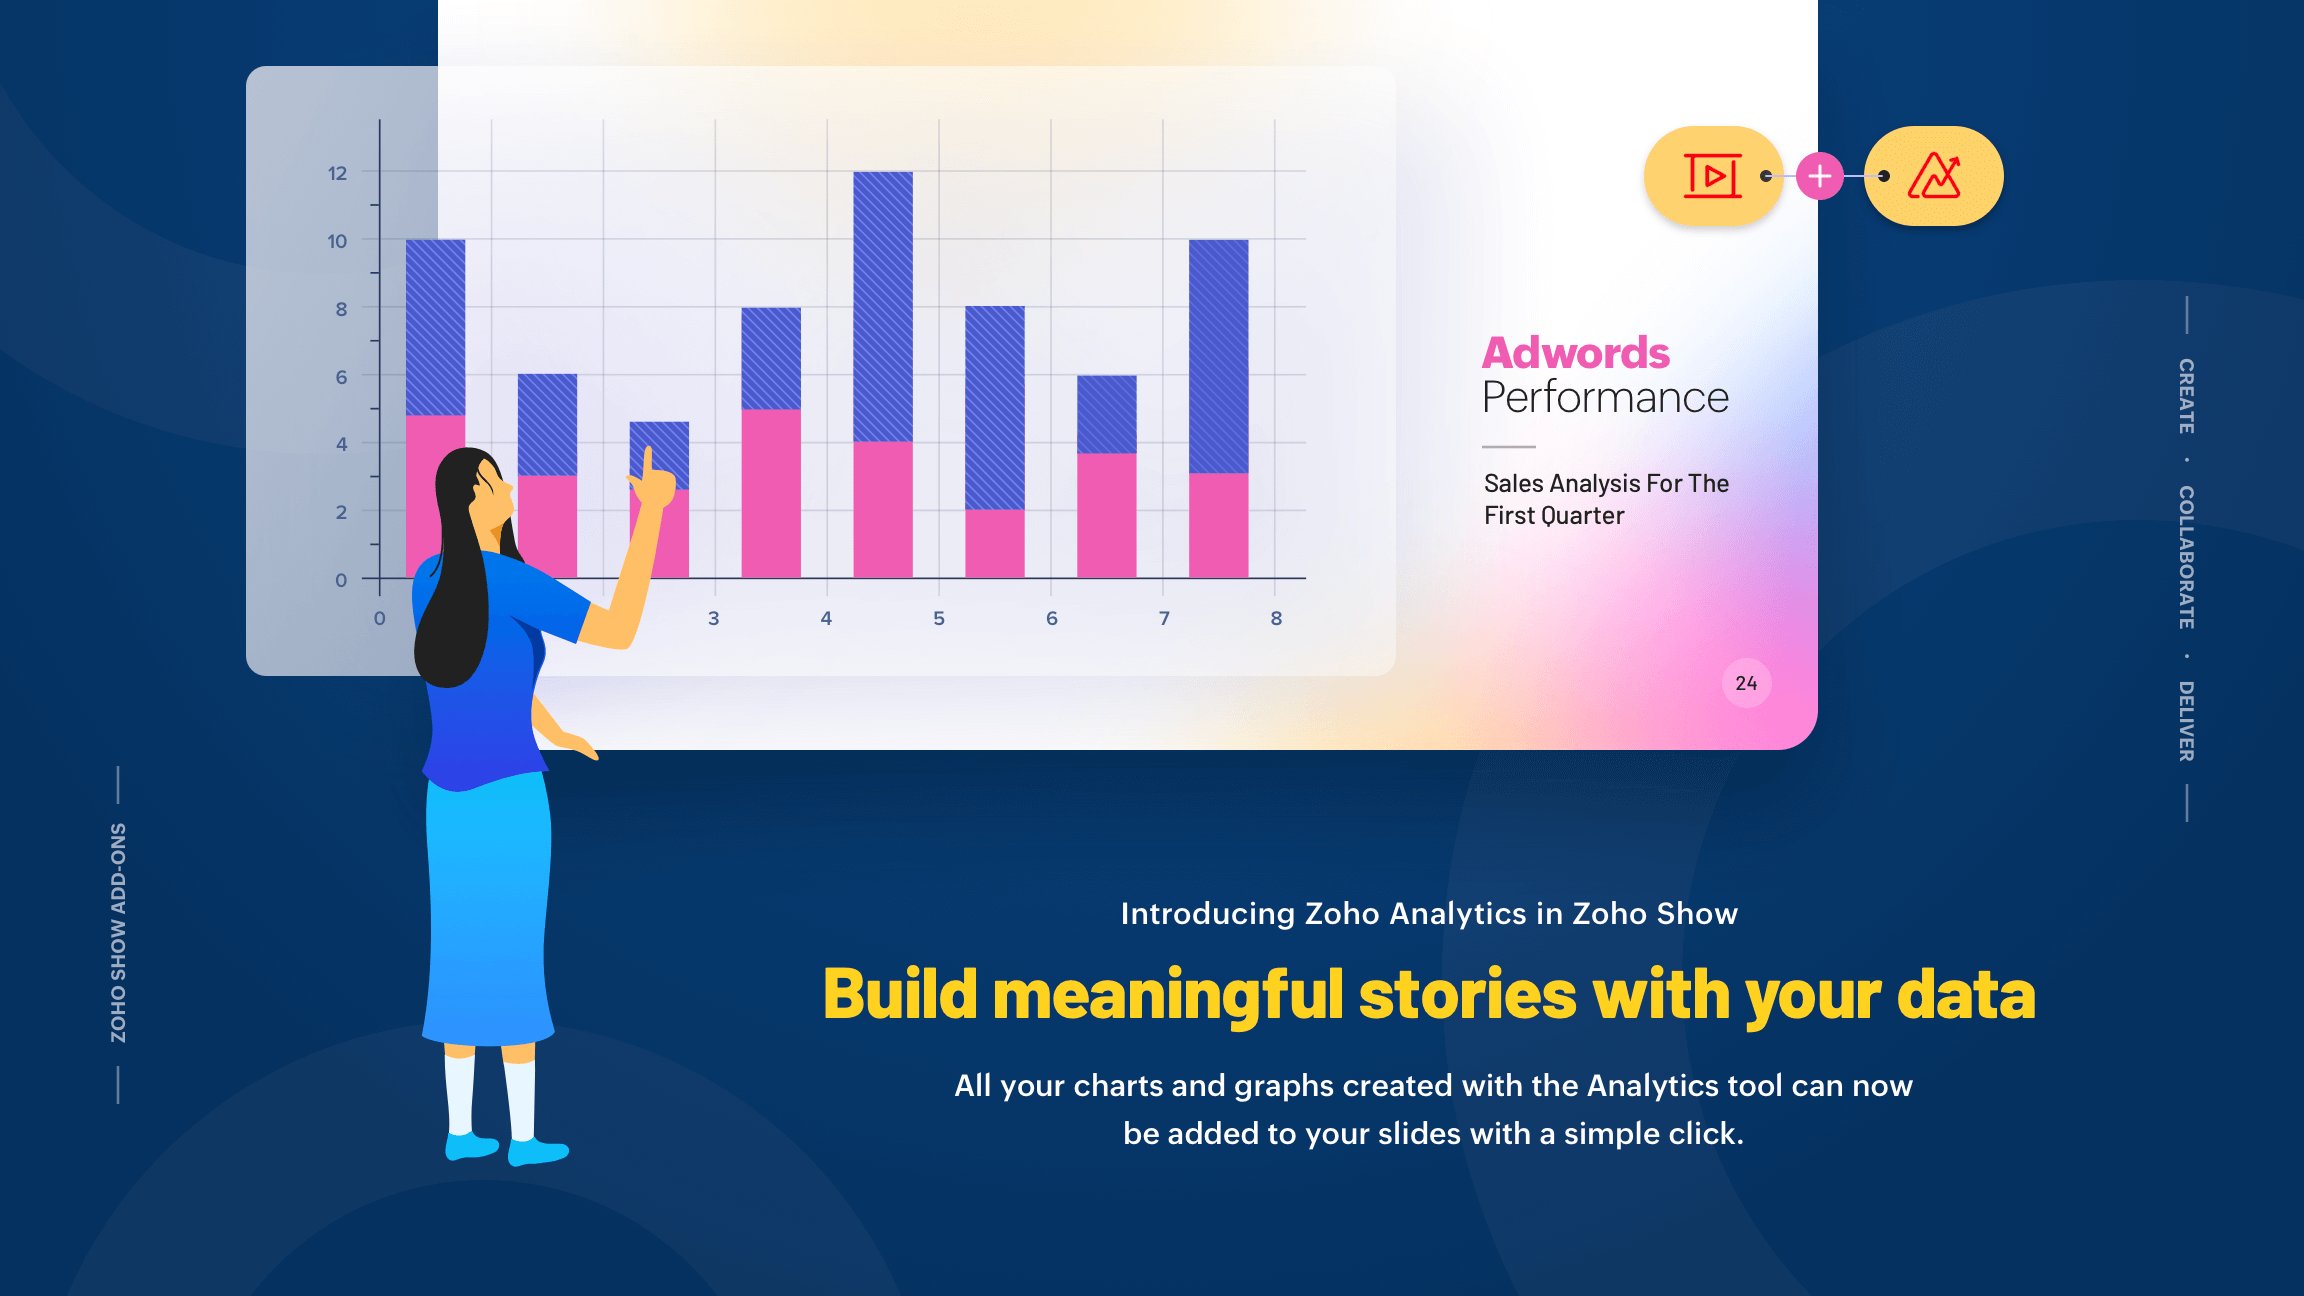 Zoho Show integrates with Zoho Analytics: Build meaningful stories with your data